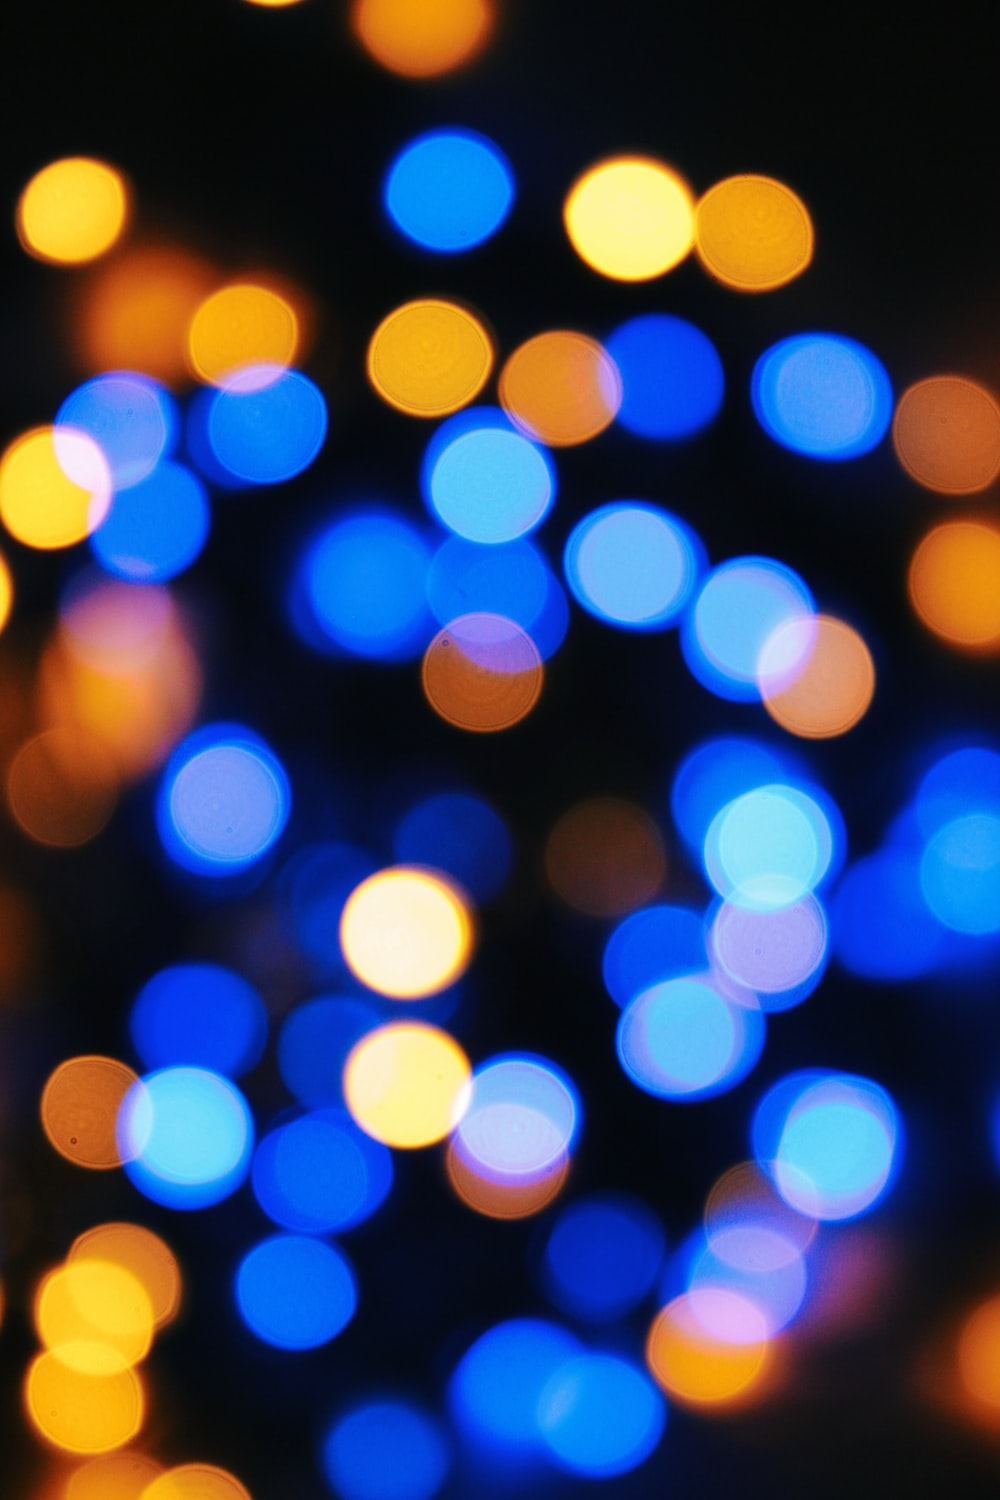 500+ Stunning Bokeh Pictures [HD] | Download Free Images